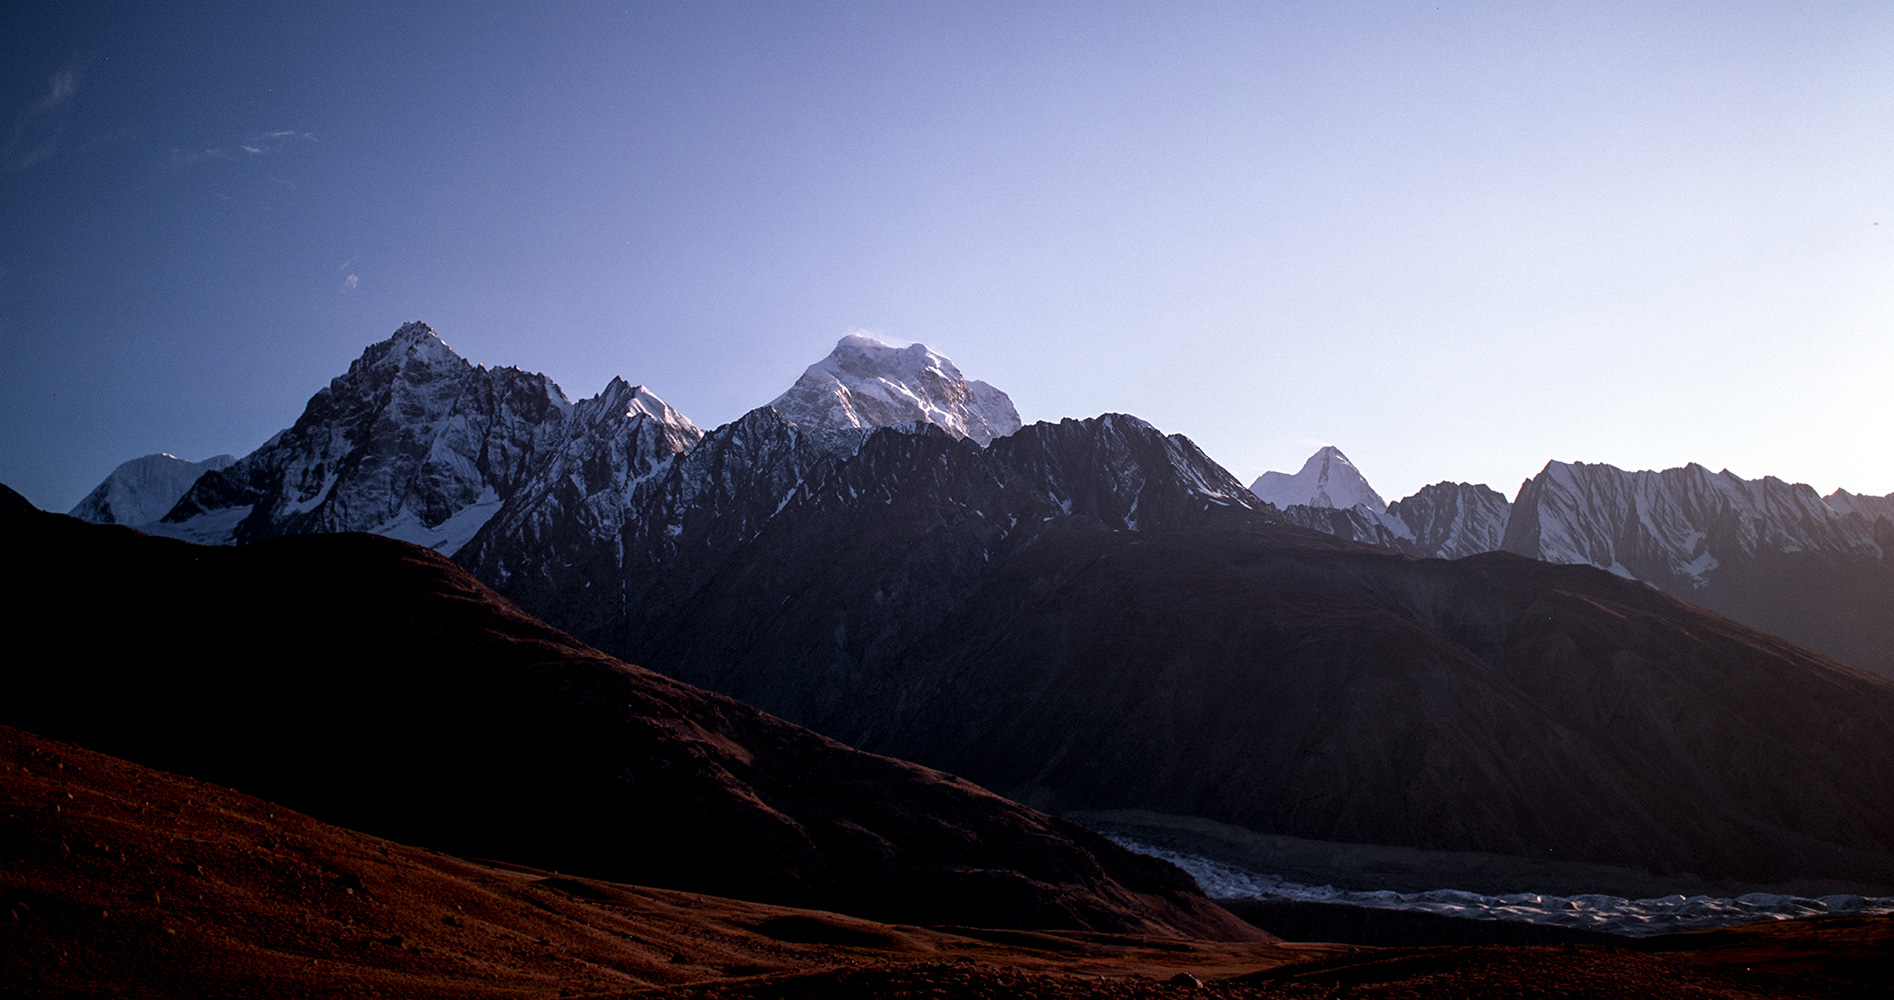 Evening light on Thui II and Koyozom from a high point above the confluence of the Chatteboi glacier and the Yarkhun valley. Chitral, NWFP, PakistanBronica ETRSi, 50mm, Fuji Velvia